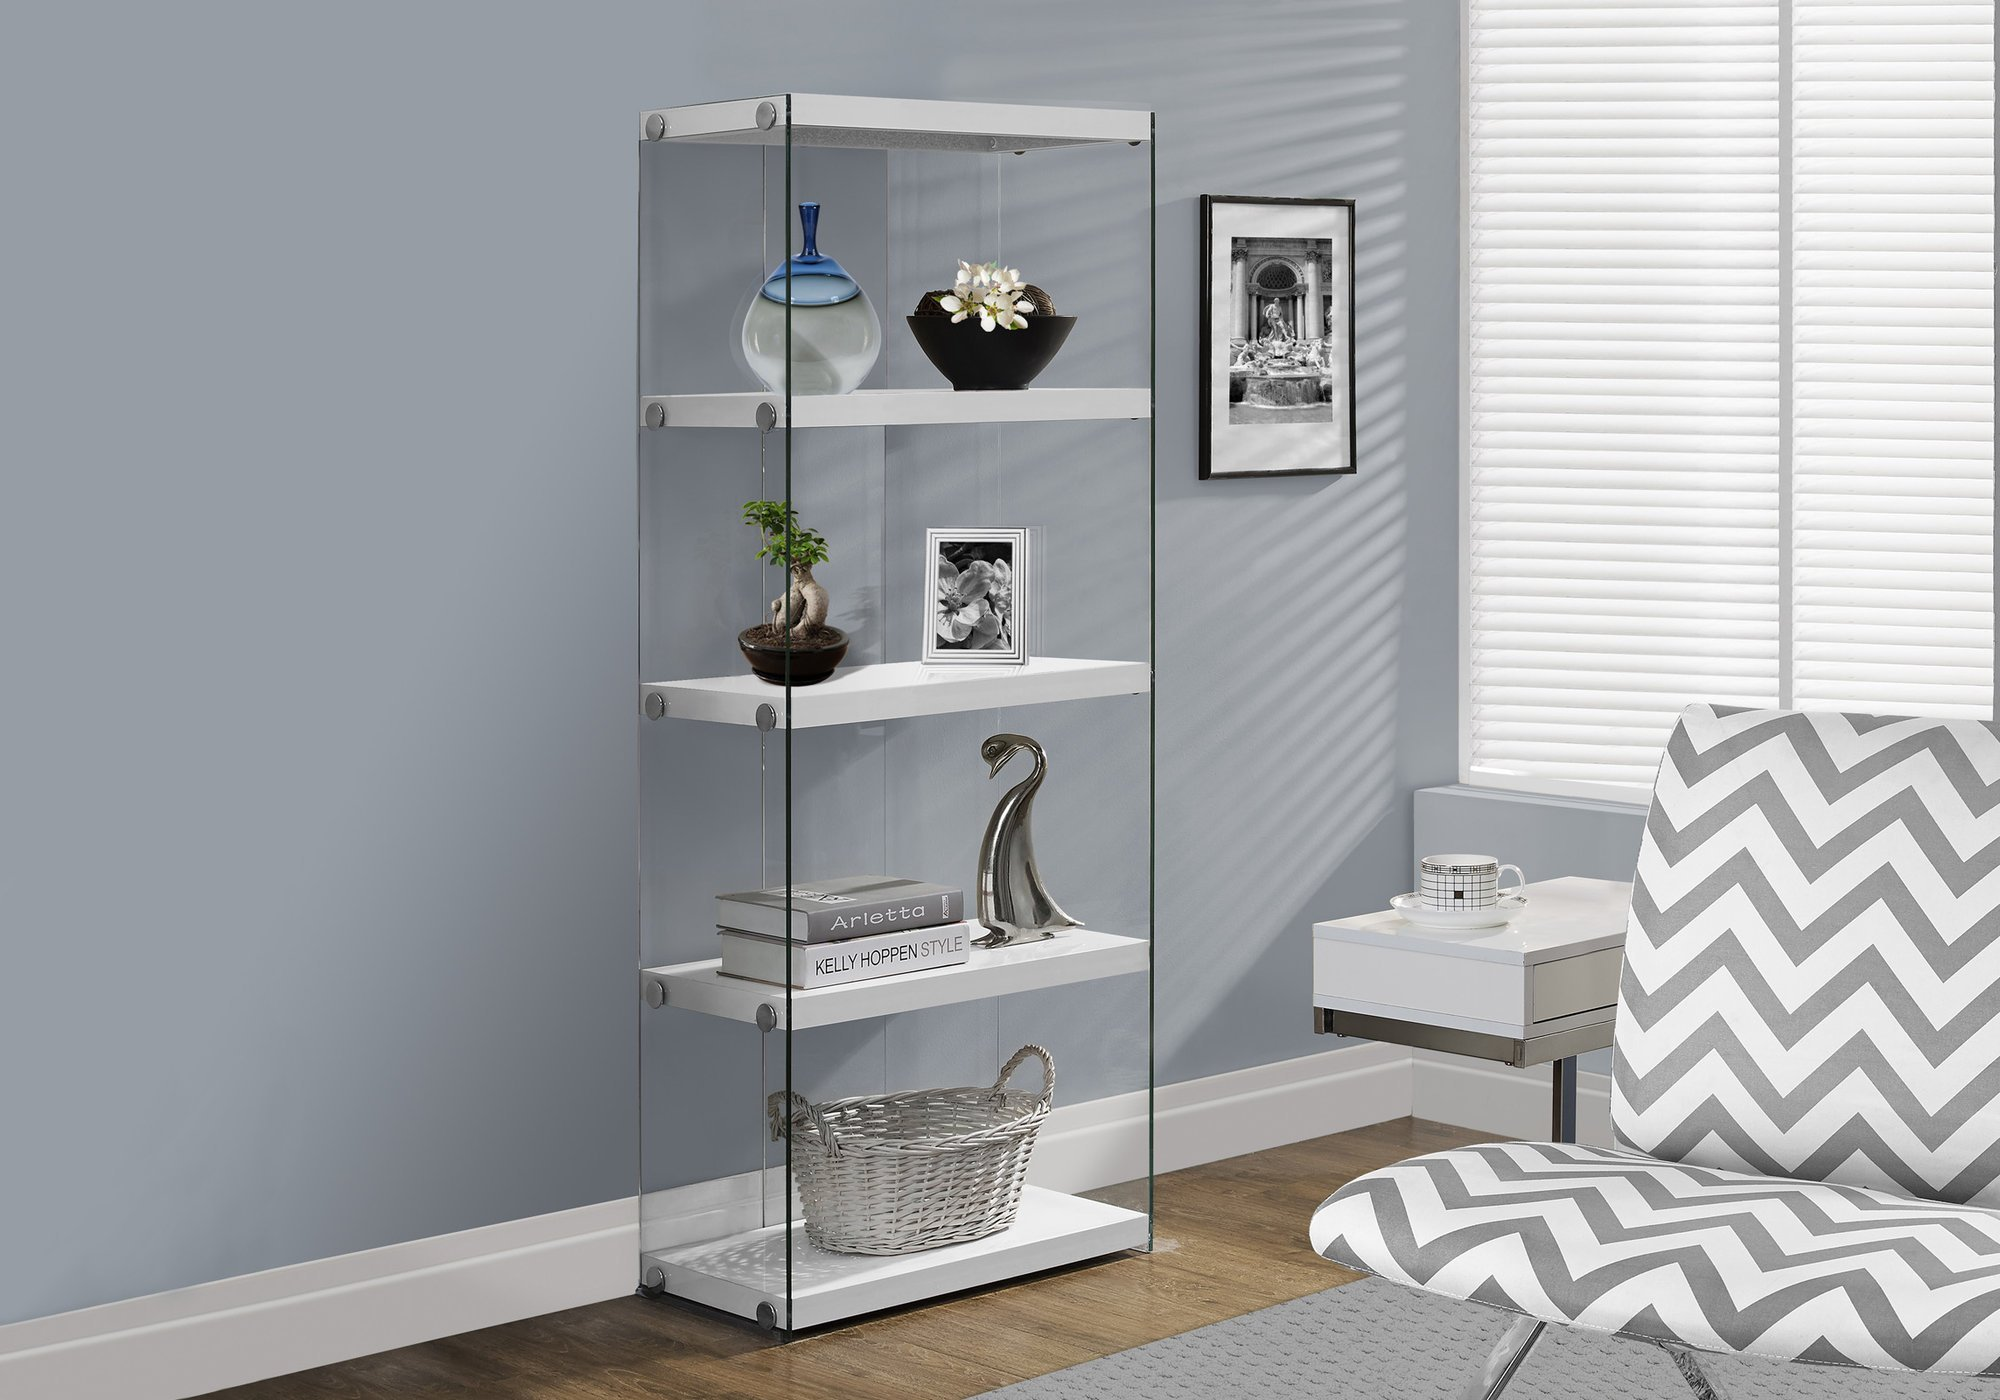 Monarch Specialties I Bookcase-5-Shelf Etagere Bookcase Contemporary Look with Tempered Glass Frame Bookshelf, 60''H, (White) by Monarch Specialties